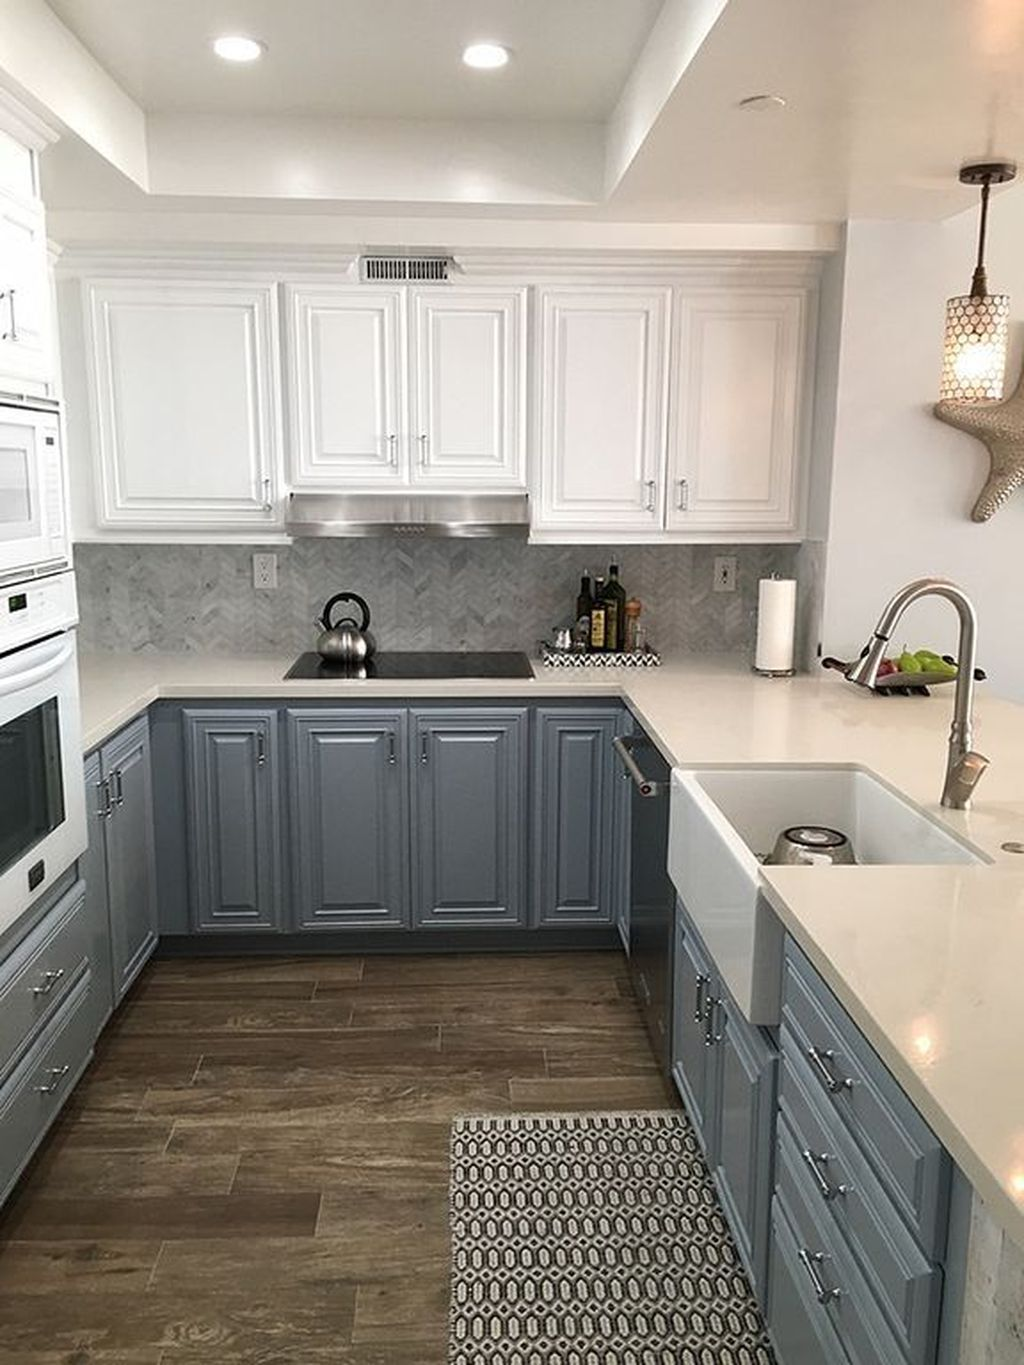 Remodeling Your Upper Cabinet Boxes: 31 Fresh Ideas ...